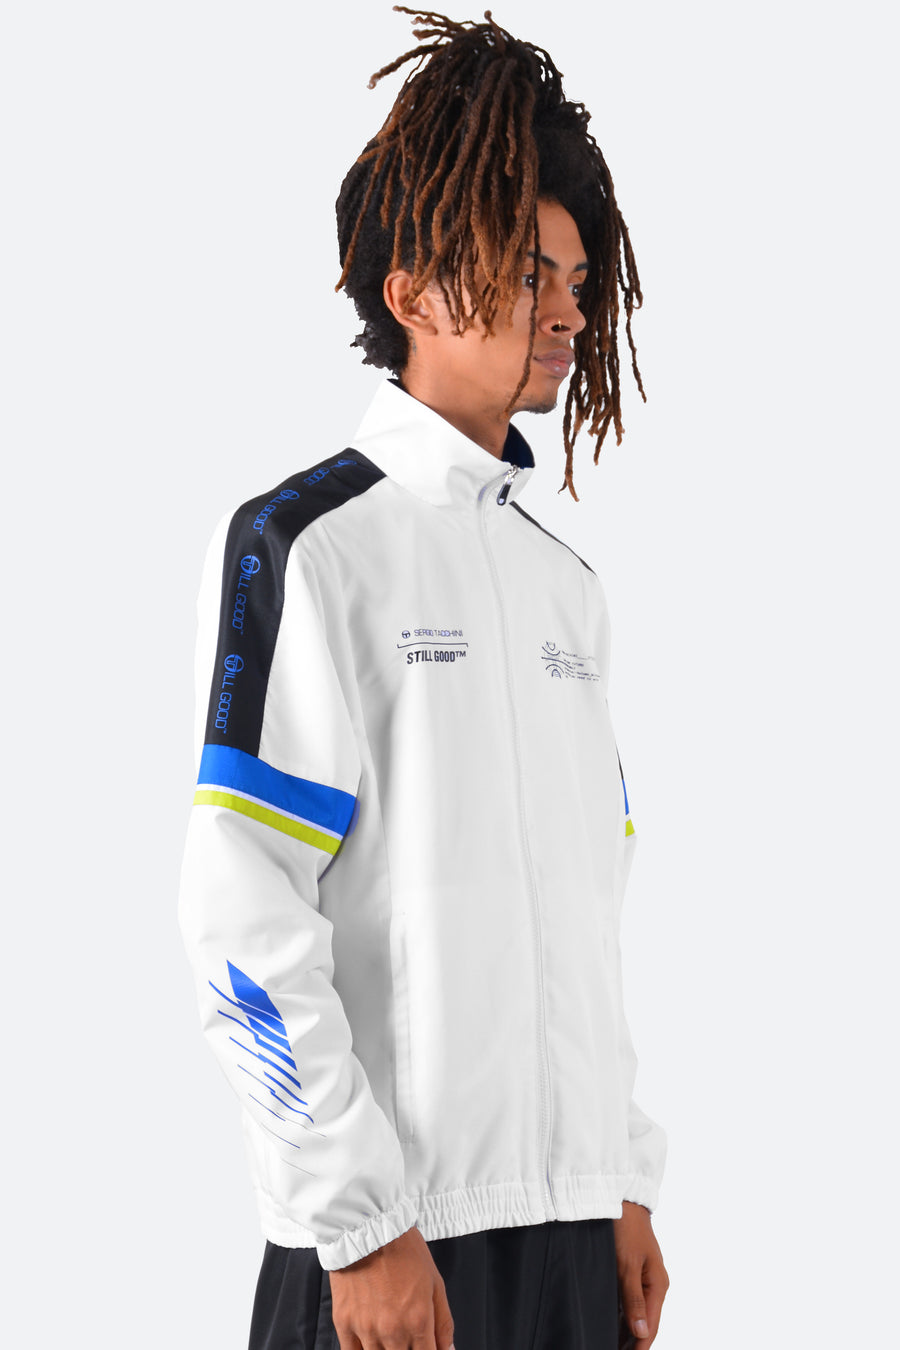 Sergio Tacchini Cryo Track Jacket | Still Good